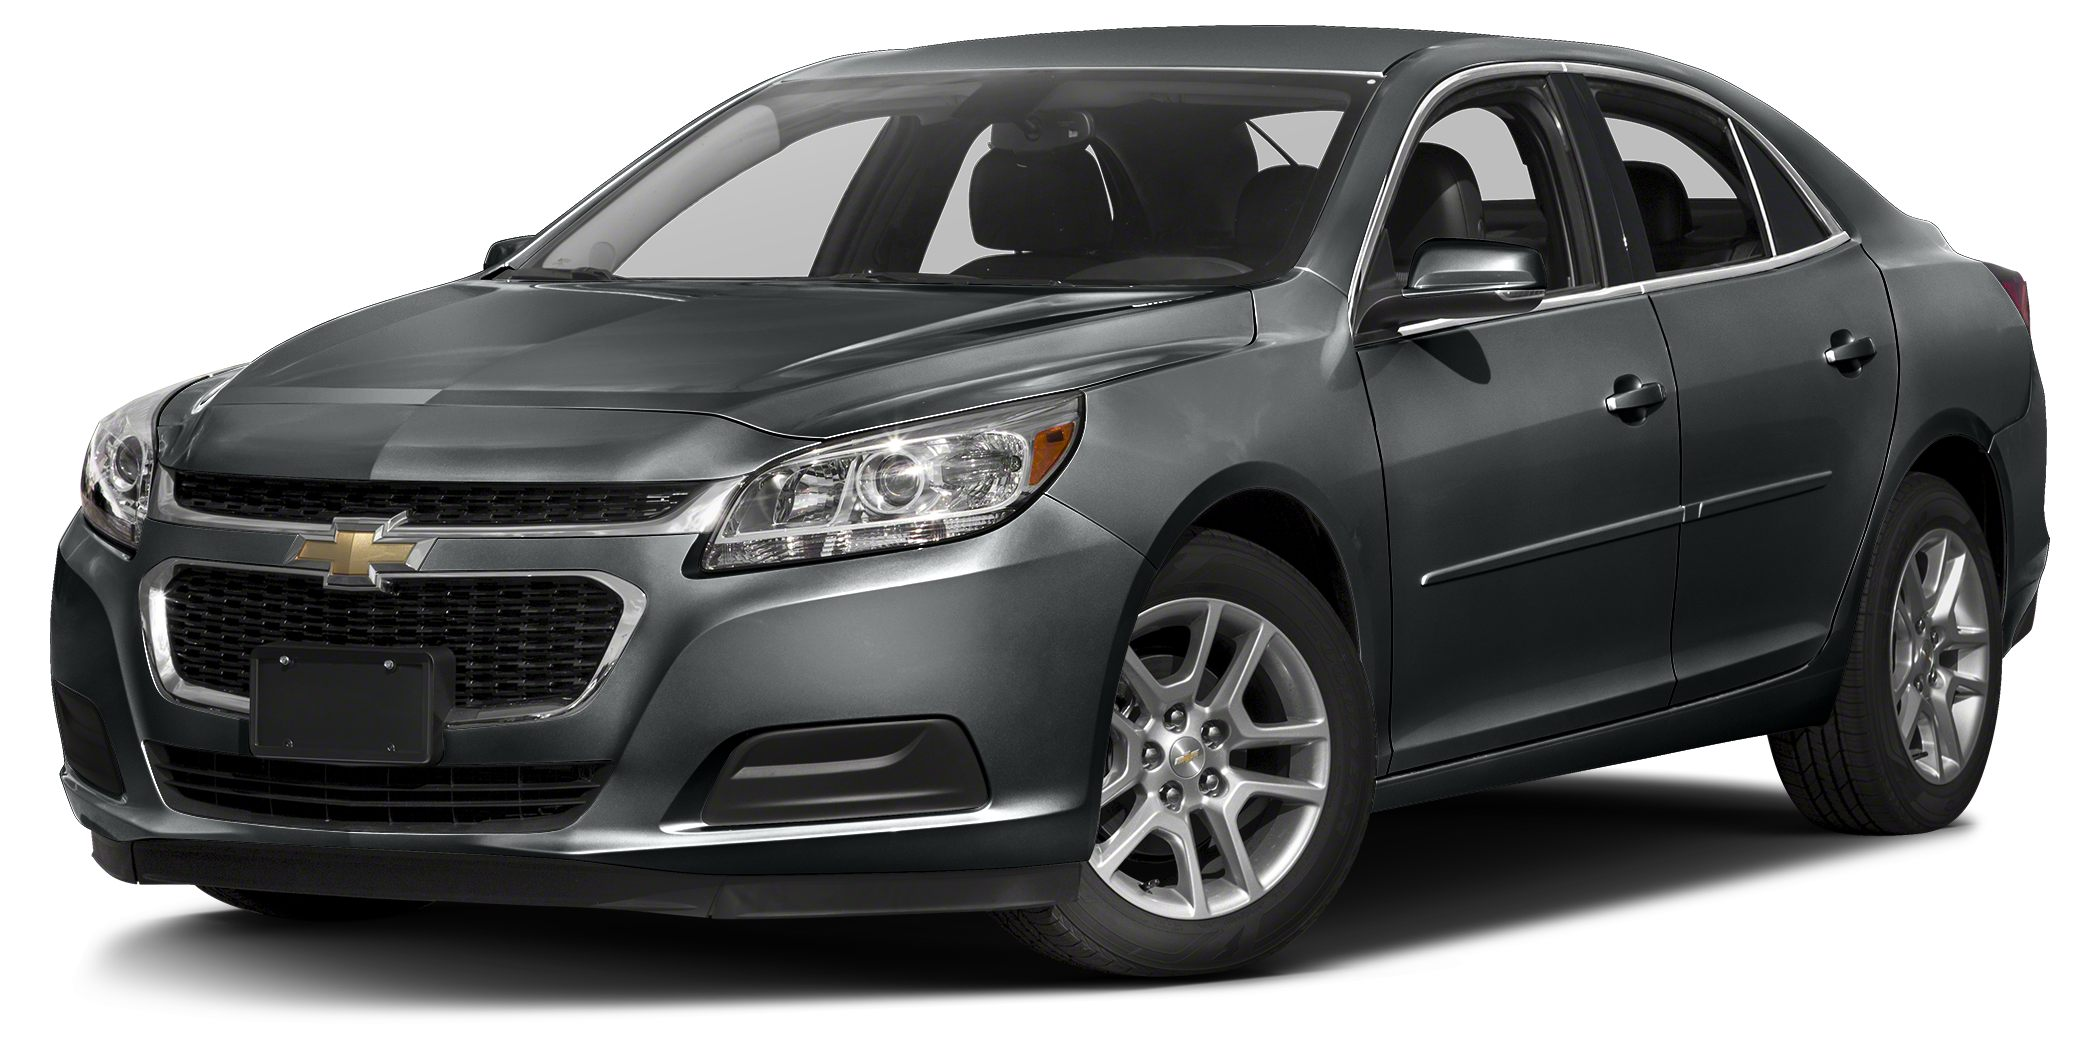 2016 Chevrolet Malibu Limited LT Your lucky day At West Coast Auto Dealers YOURE 1 This is yo